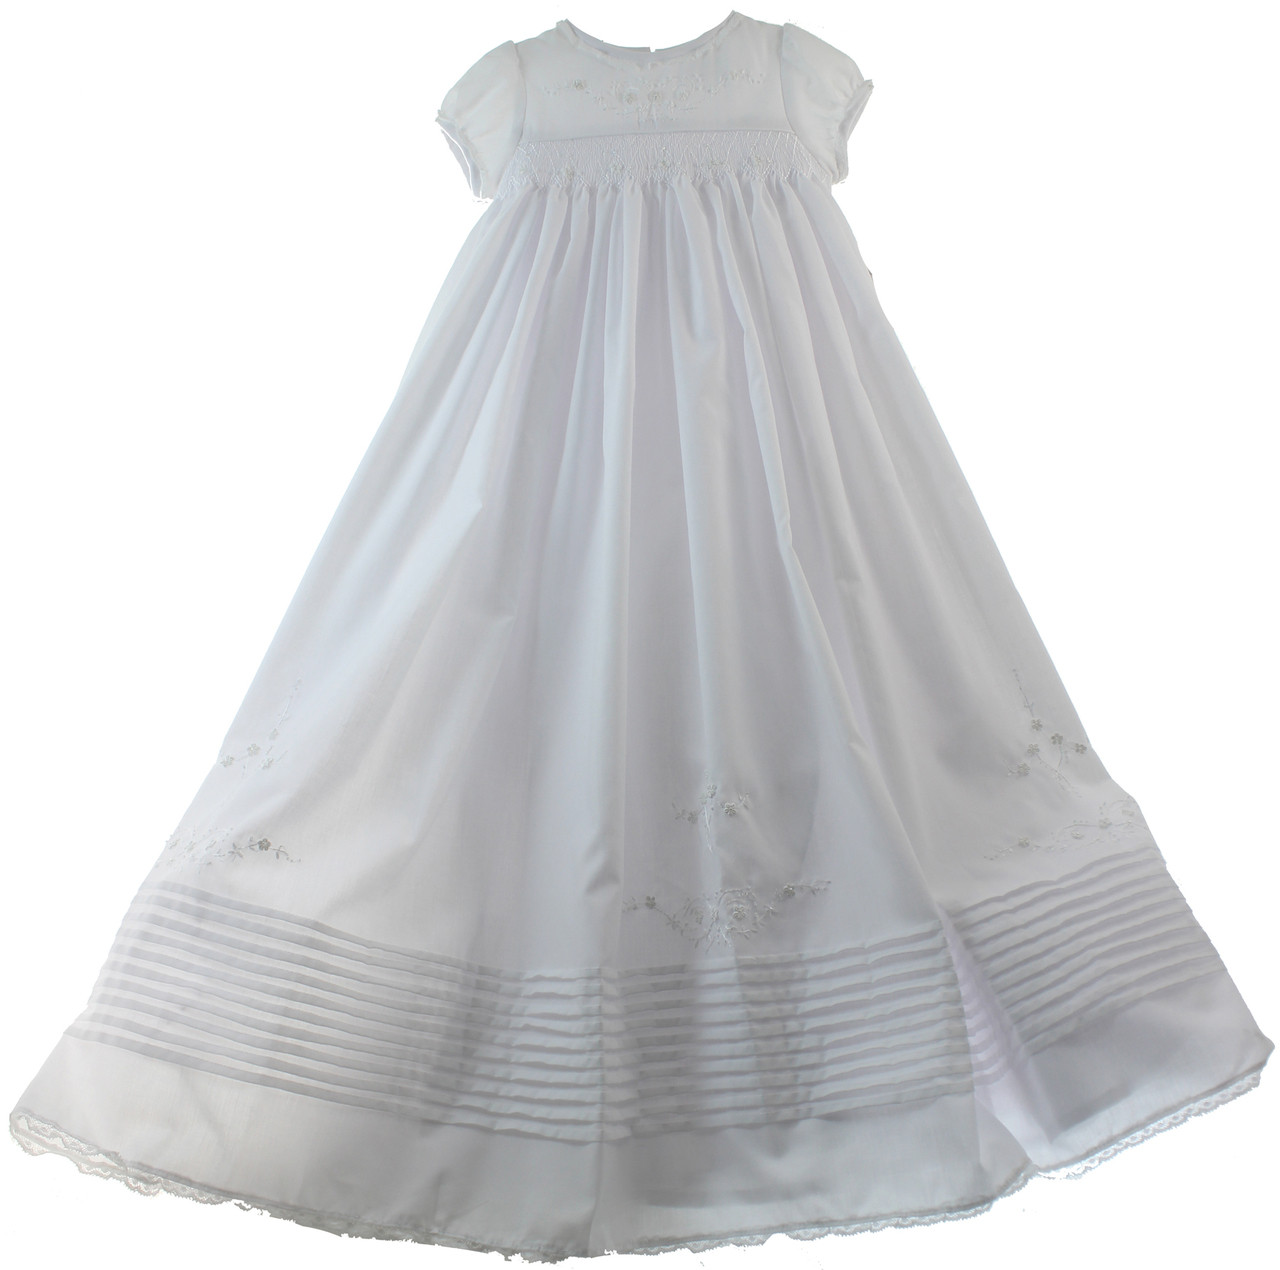 e72ceb1da Girls Christening Gown Sarah Louise. Smocked Christening Bonnet Sarah  Louise. Image 3. See 2 more pictures